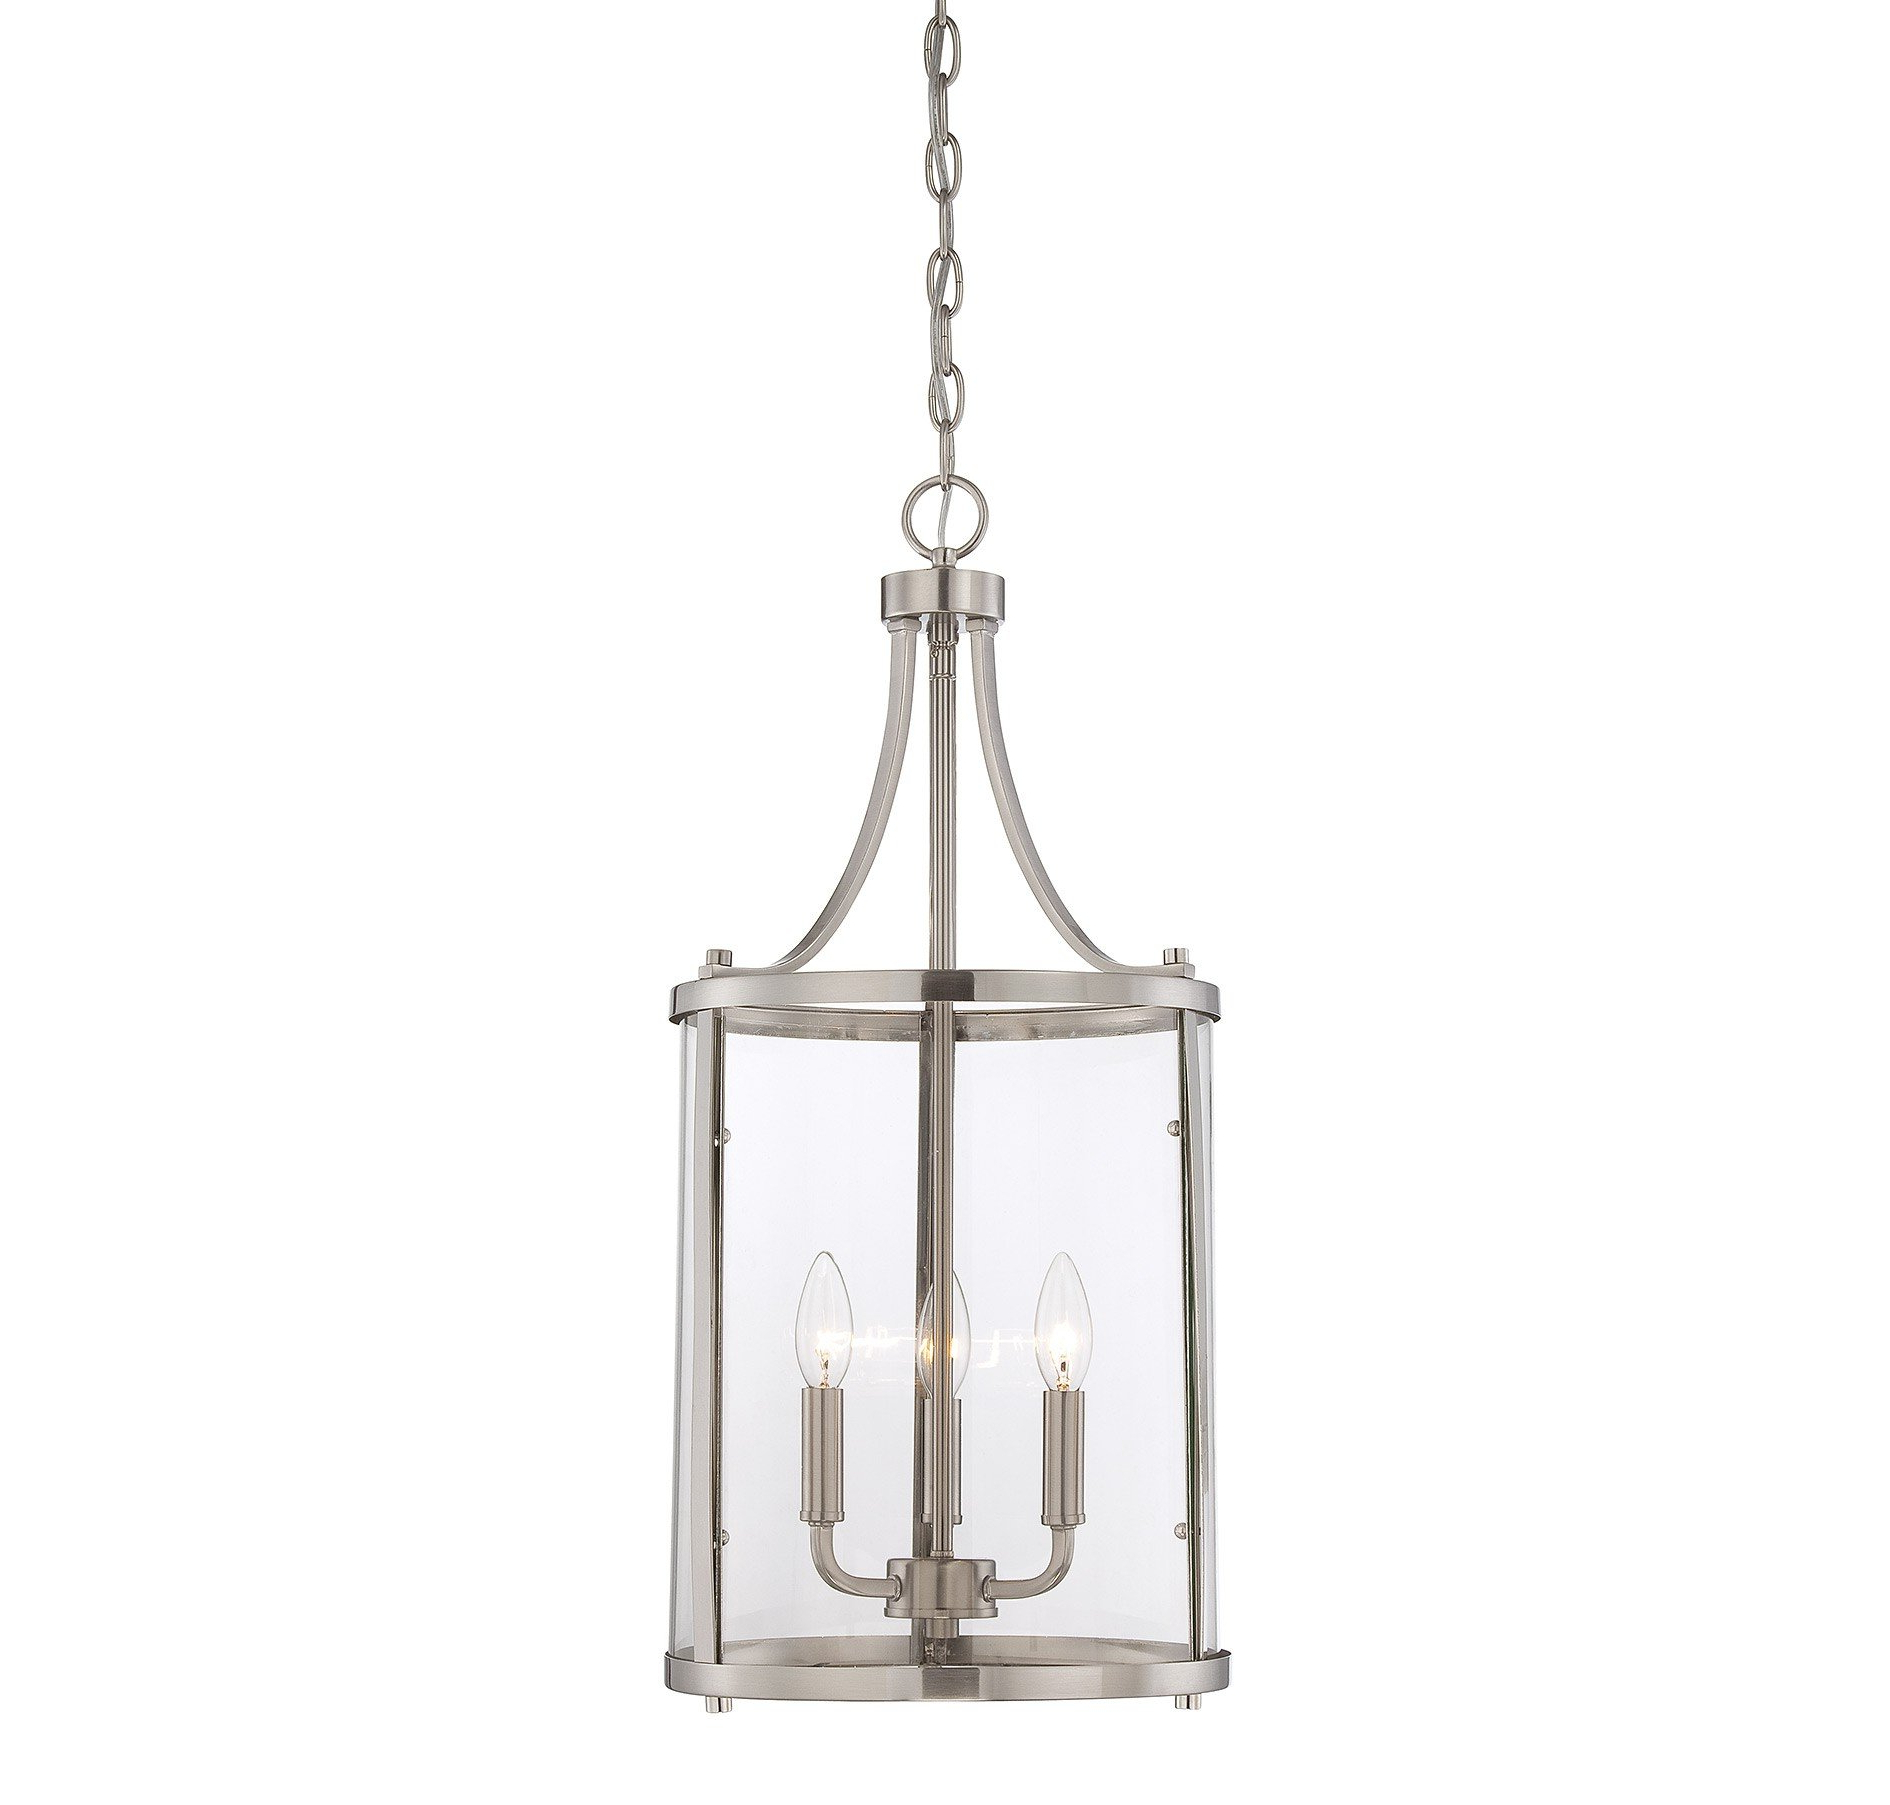 3 Light Lantern Cylinder Pendant Throughout Widely Used Gabriella 3 Light Lantern Chandeliers (View 2 of 25)